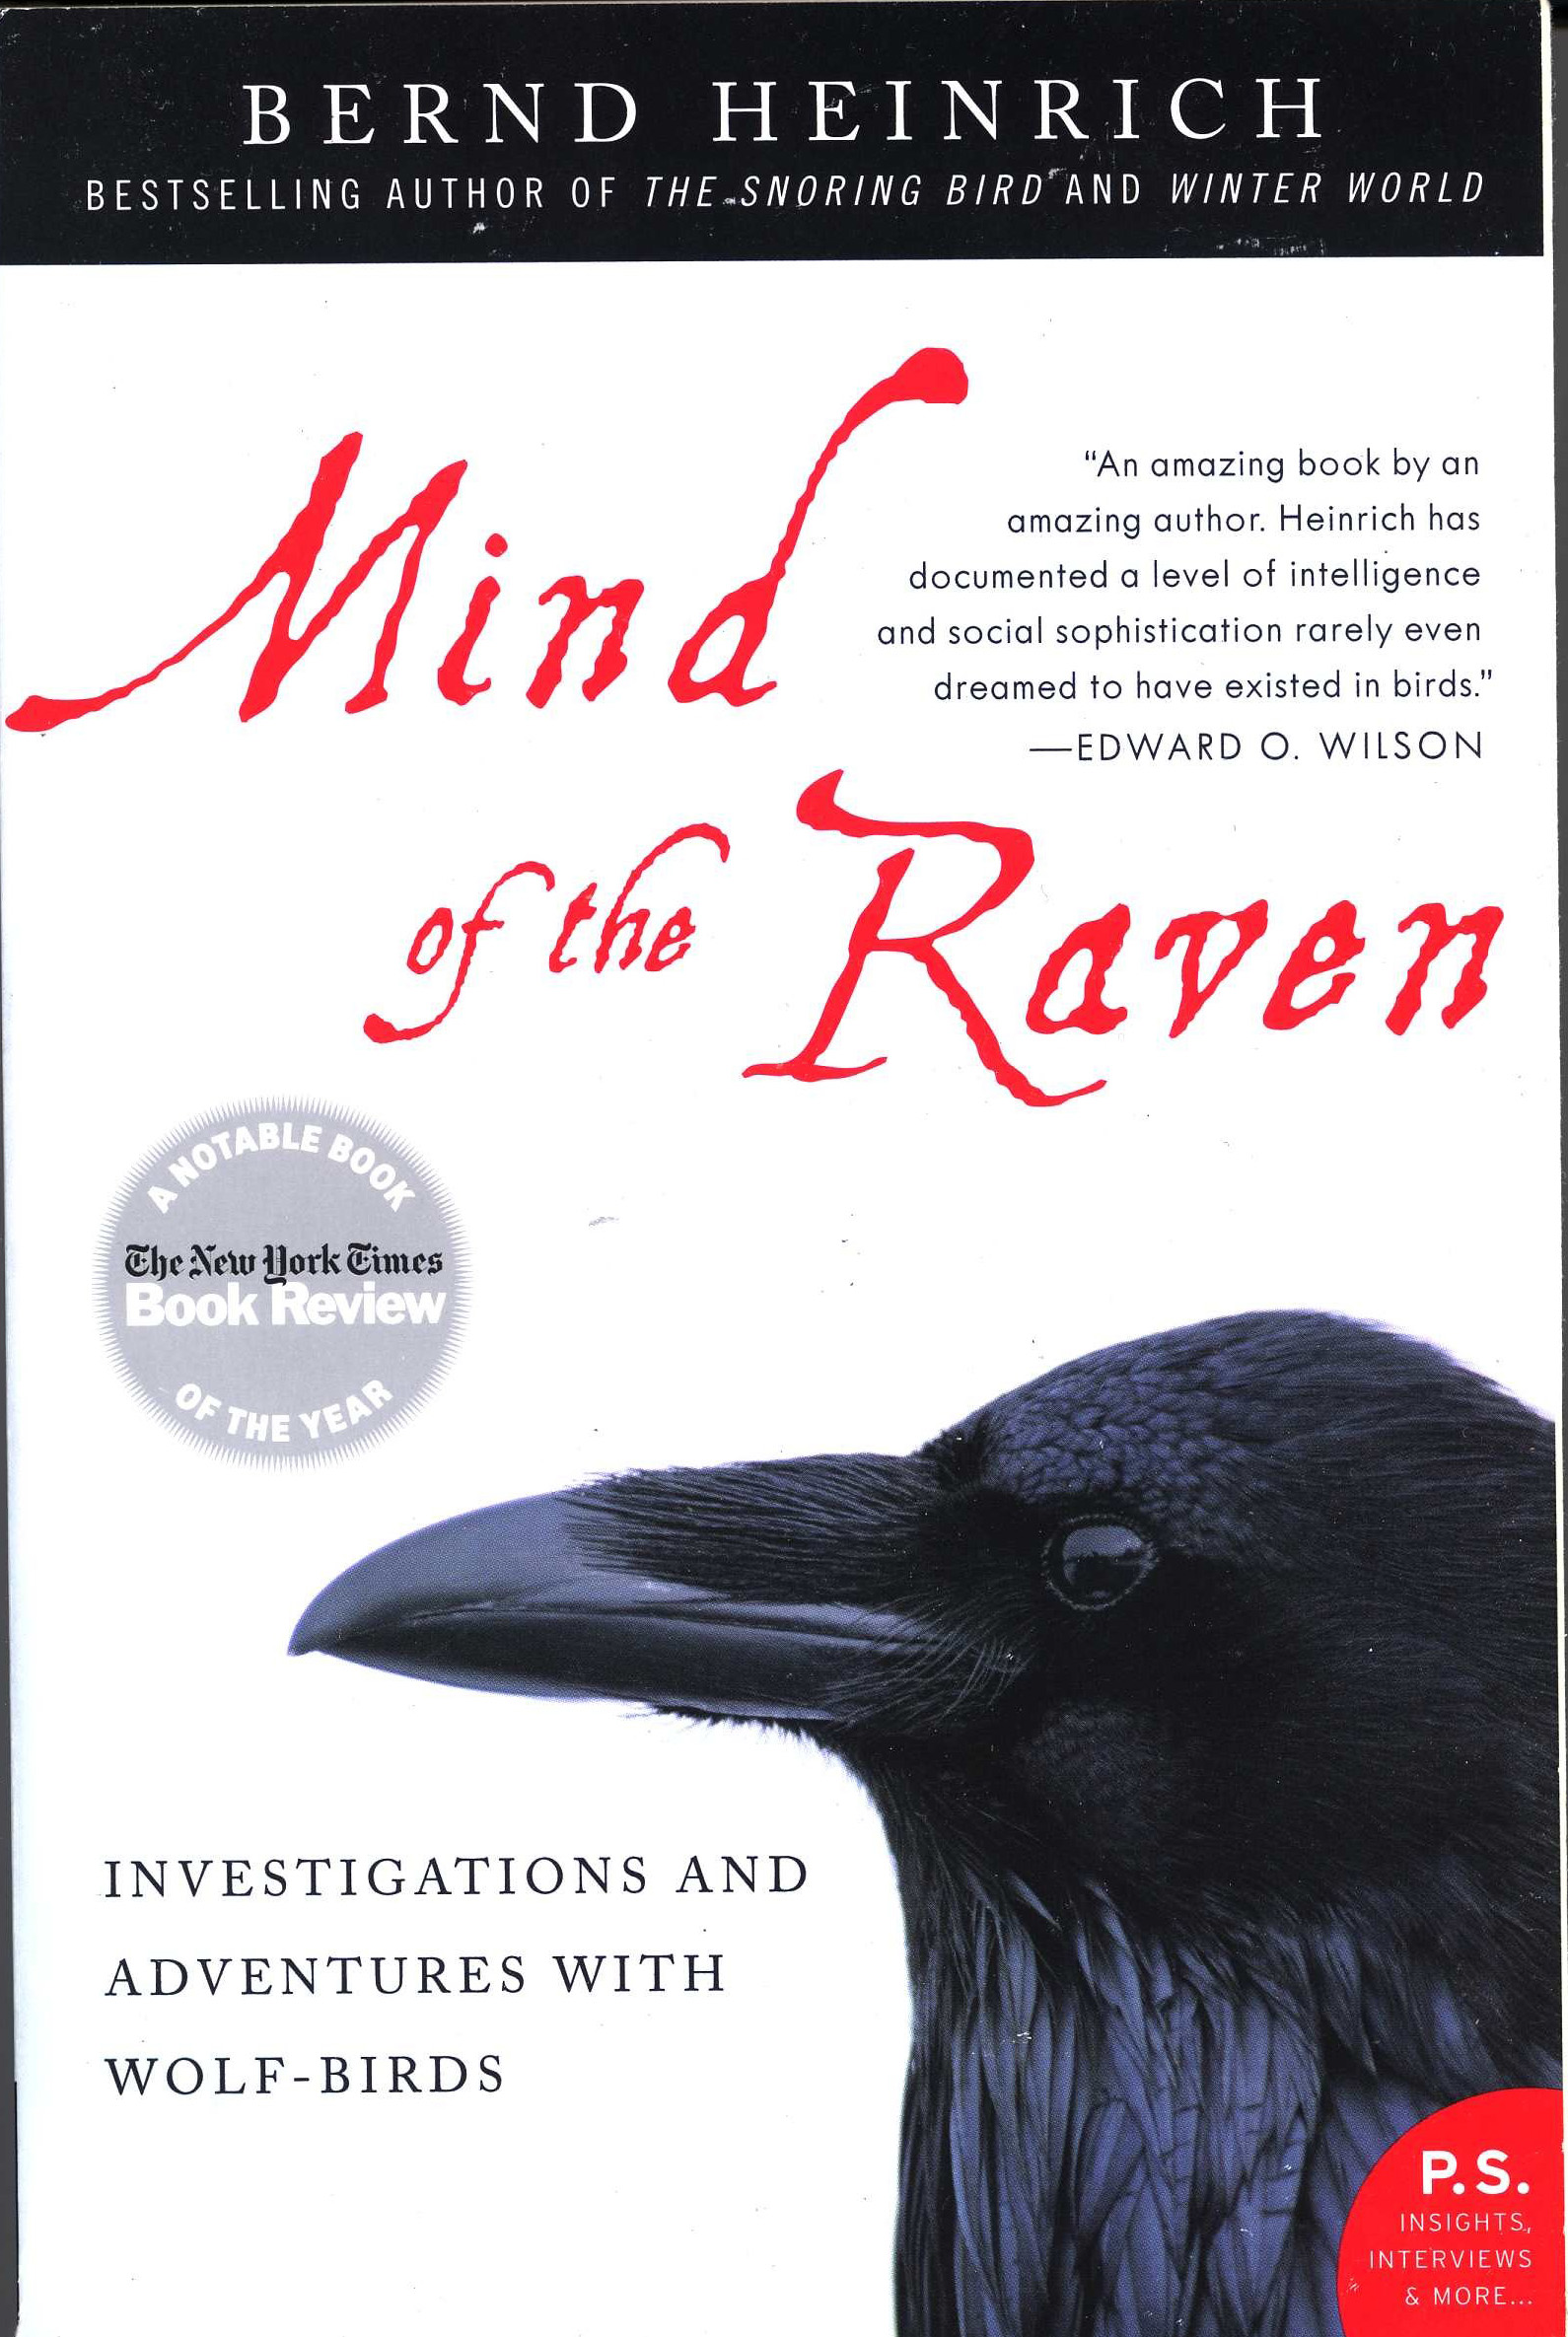 The Kite Runner Essay Questions Book Review Mind Of The Raven Ramekin Cottage Confession I Ve Been  Fascinated By Ravens Since Guide To Writing An Analytical Essay also Belonging Essay Introduction The Raven Essay Paul Elder Co The Raven  A Summary Analysis Of  Lysistrata Essay Topics